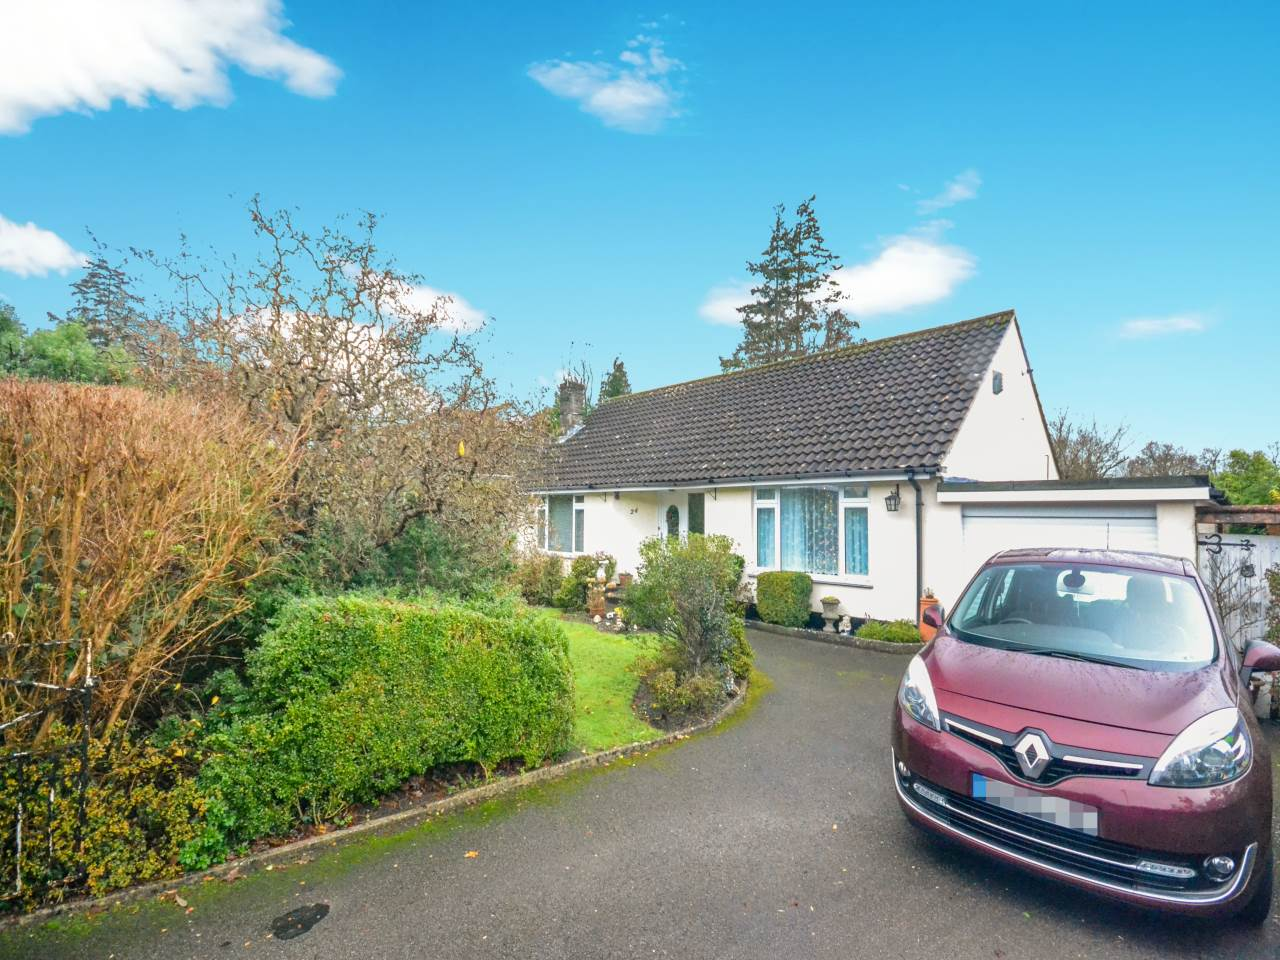 2 bed bungalow for sale in Martins Drive, Ferndown - Property Image 1